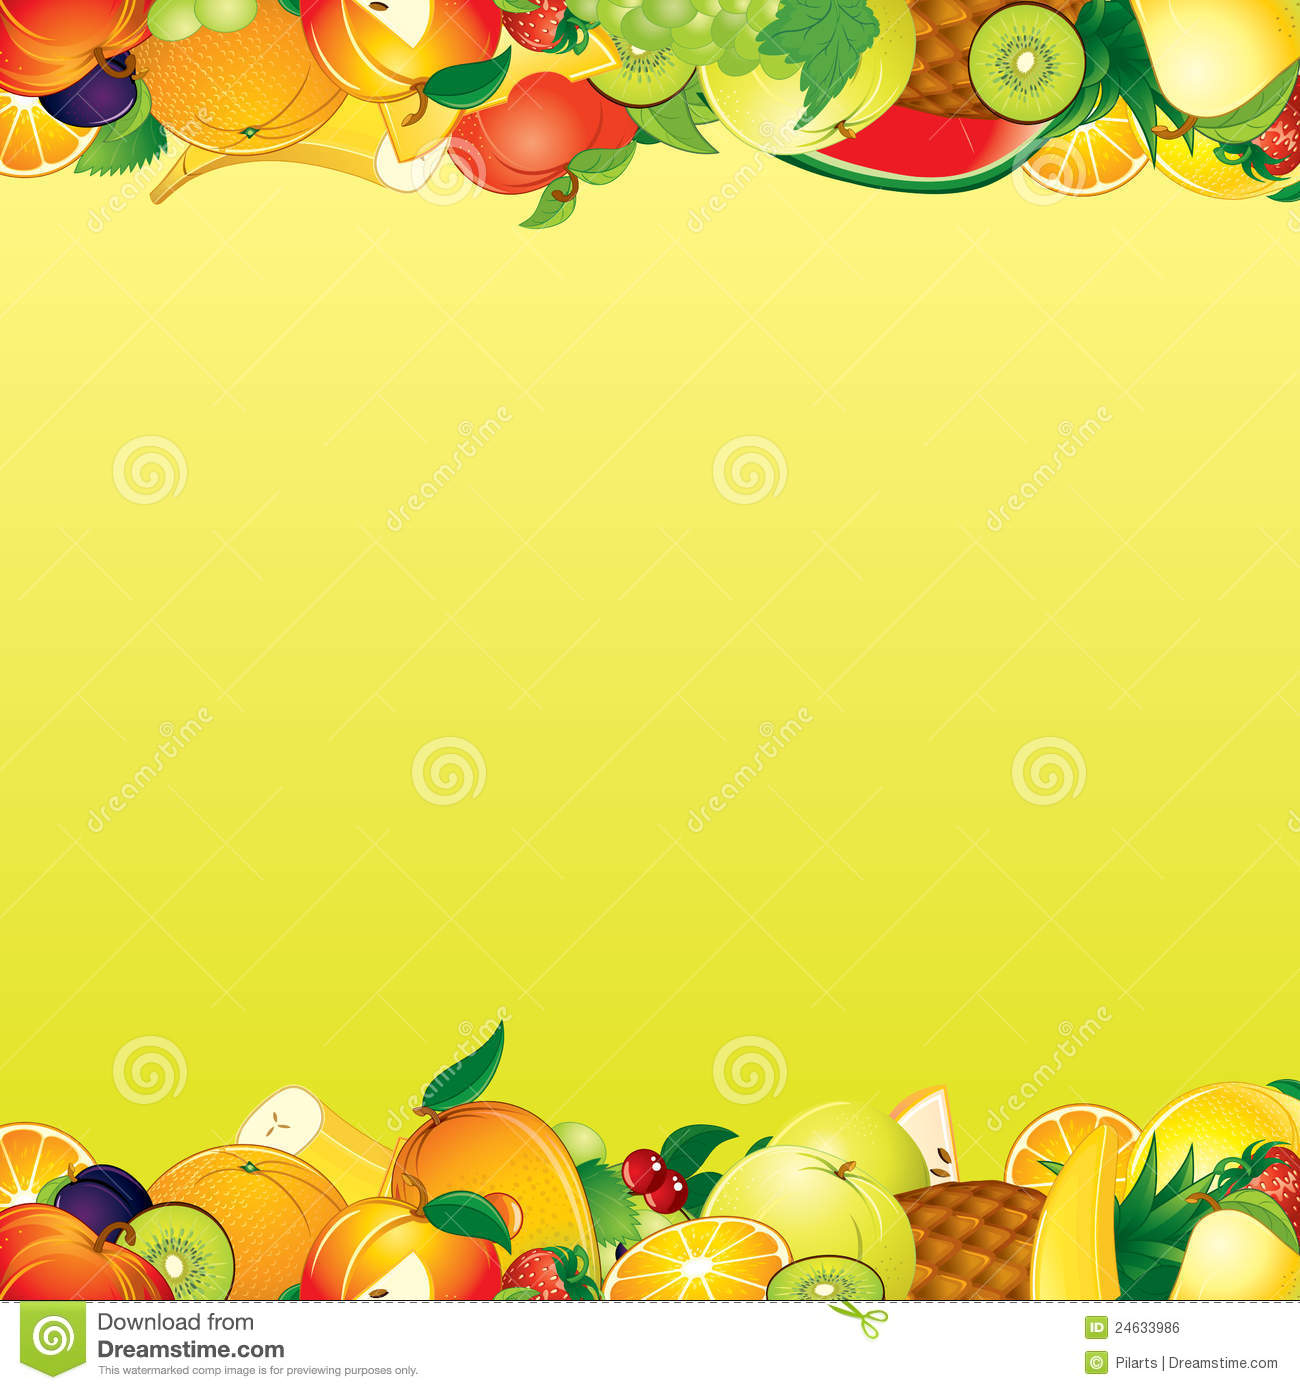 Fruits Background Stock Vector. Illustration Of Border